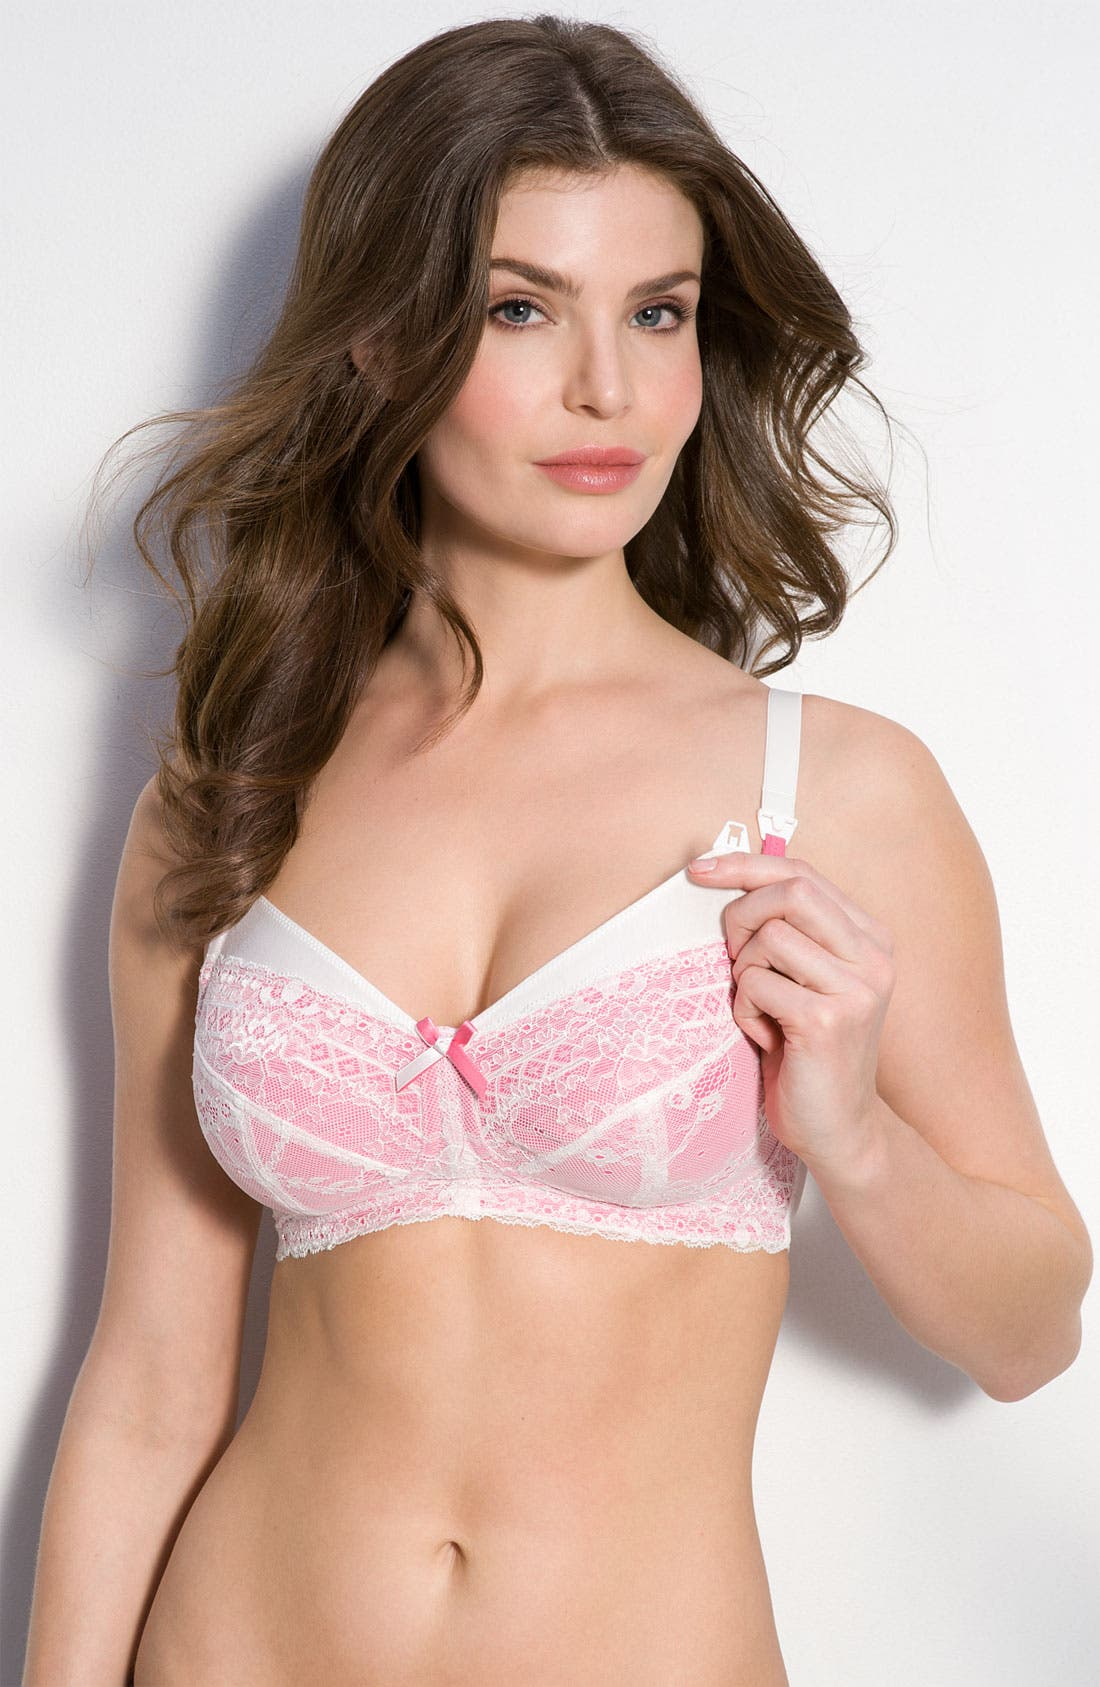 Main Image - Panache 'Sophie 5821' Wireless Nursing Bra (DD Cup & Up)